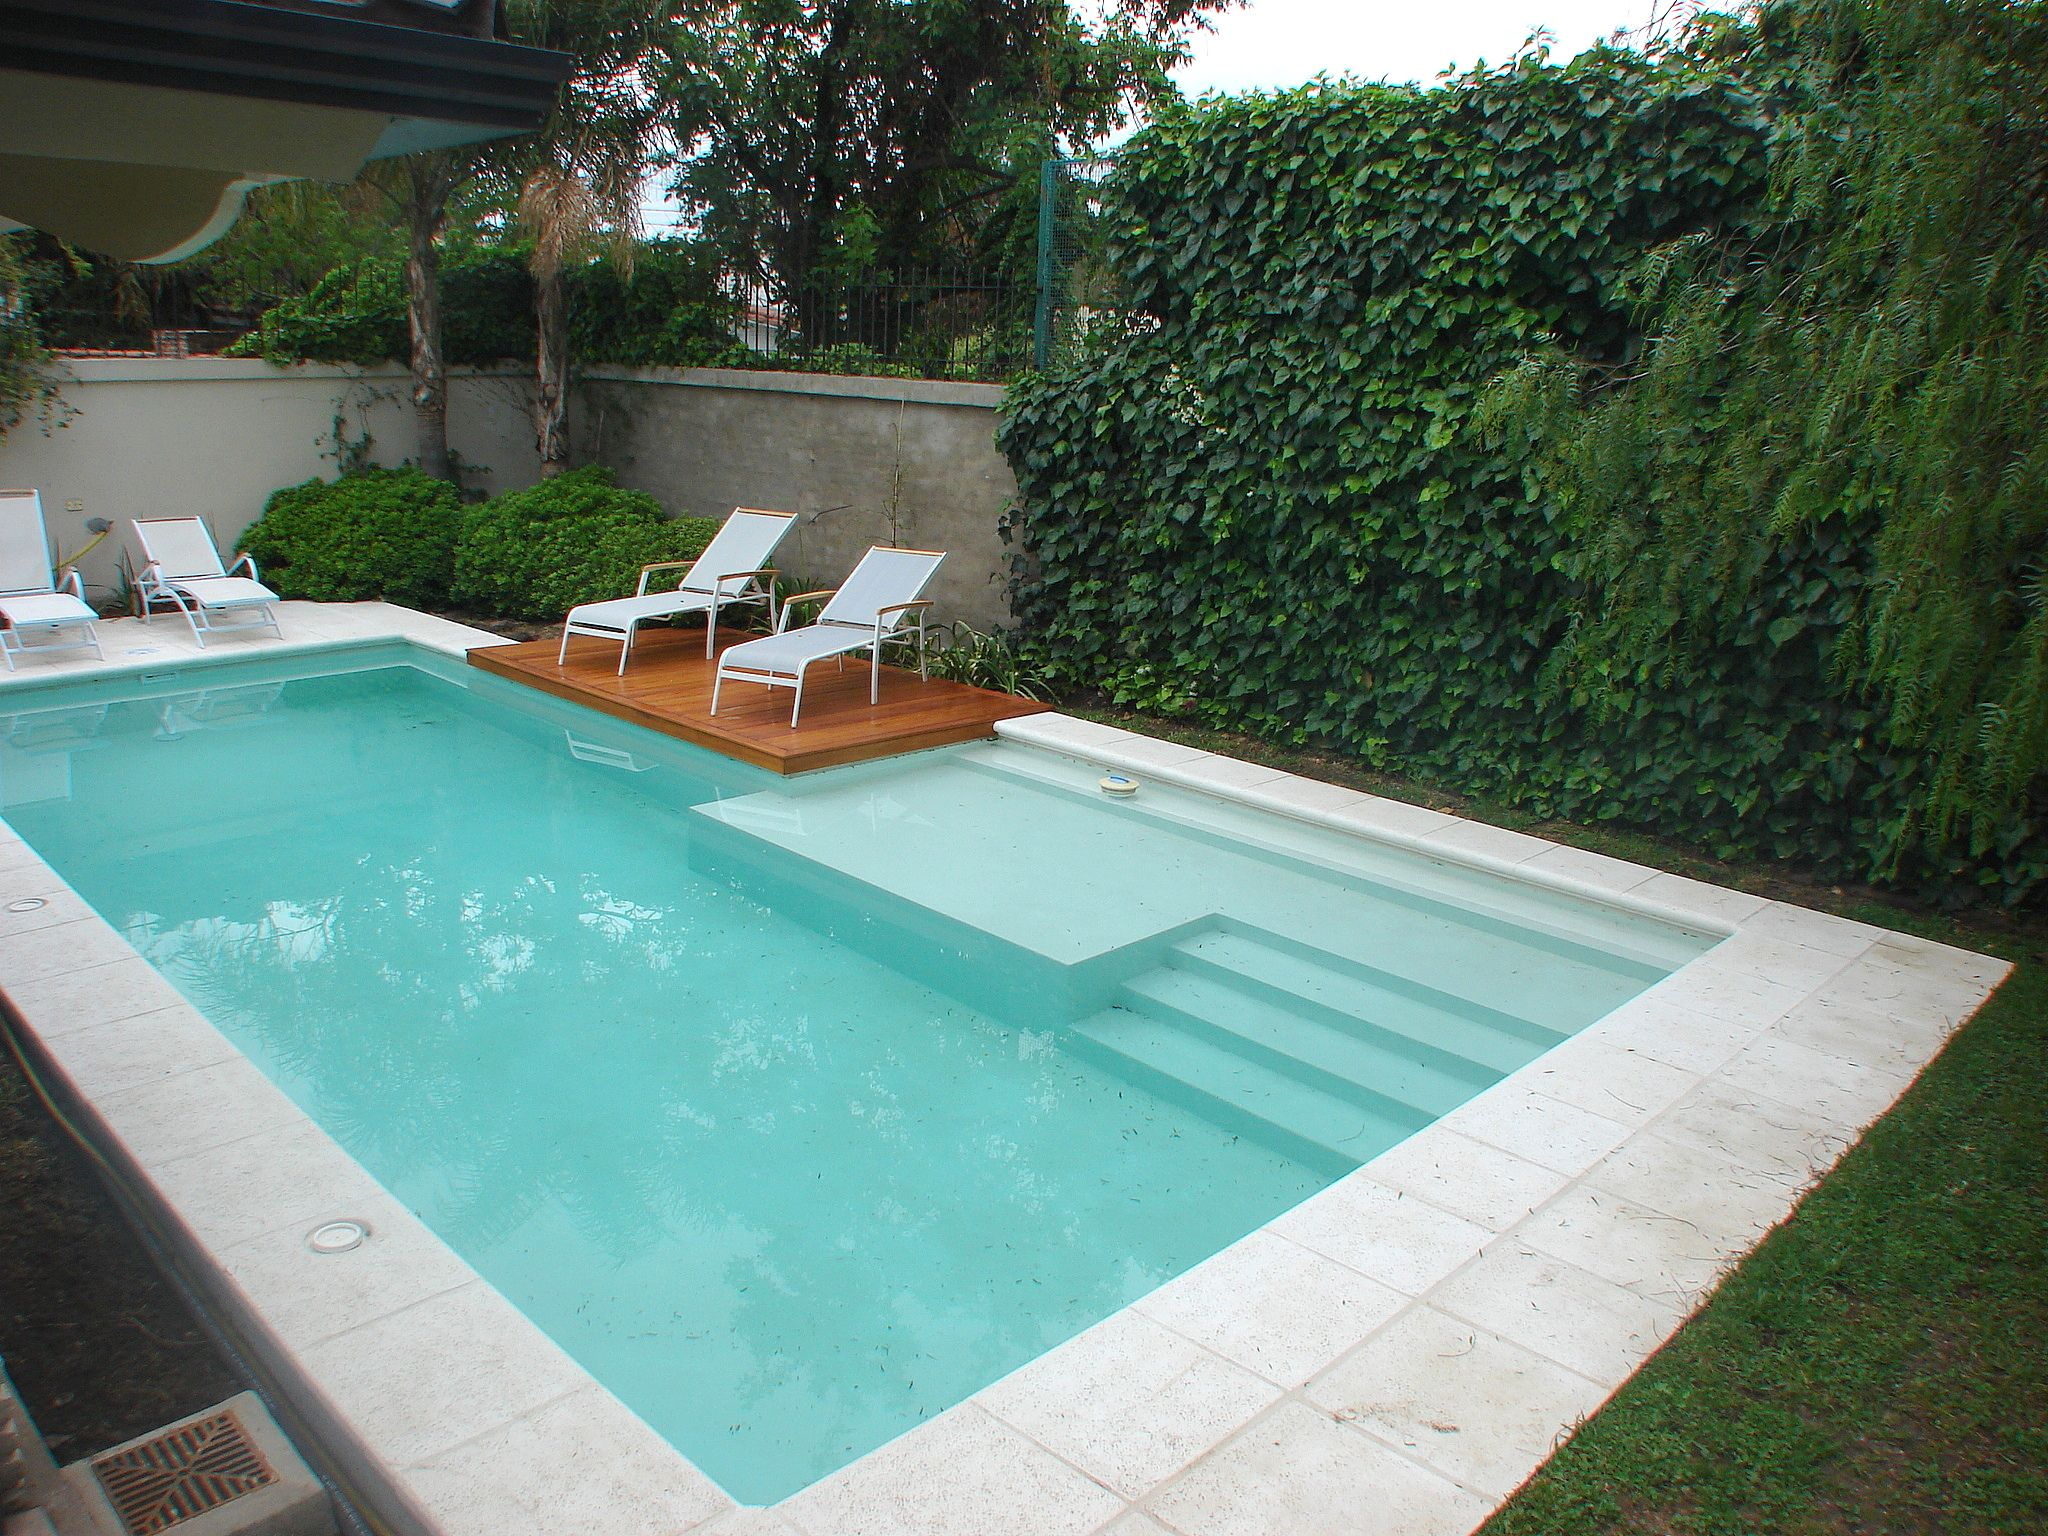 Piscina familiar swimmingpool deck de madera for Casas de alquiler de verano con piscina